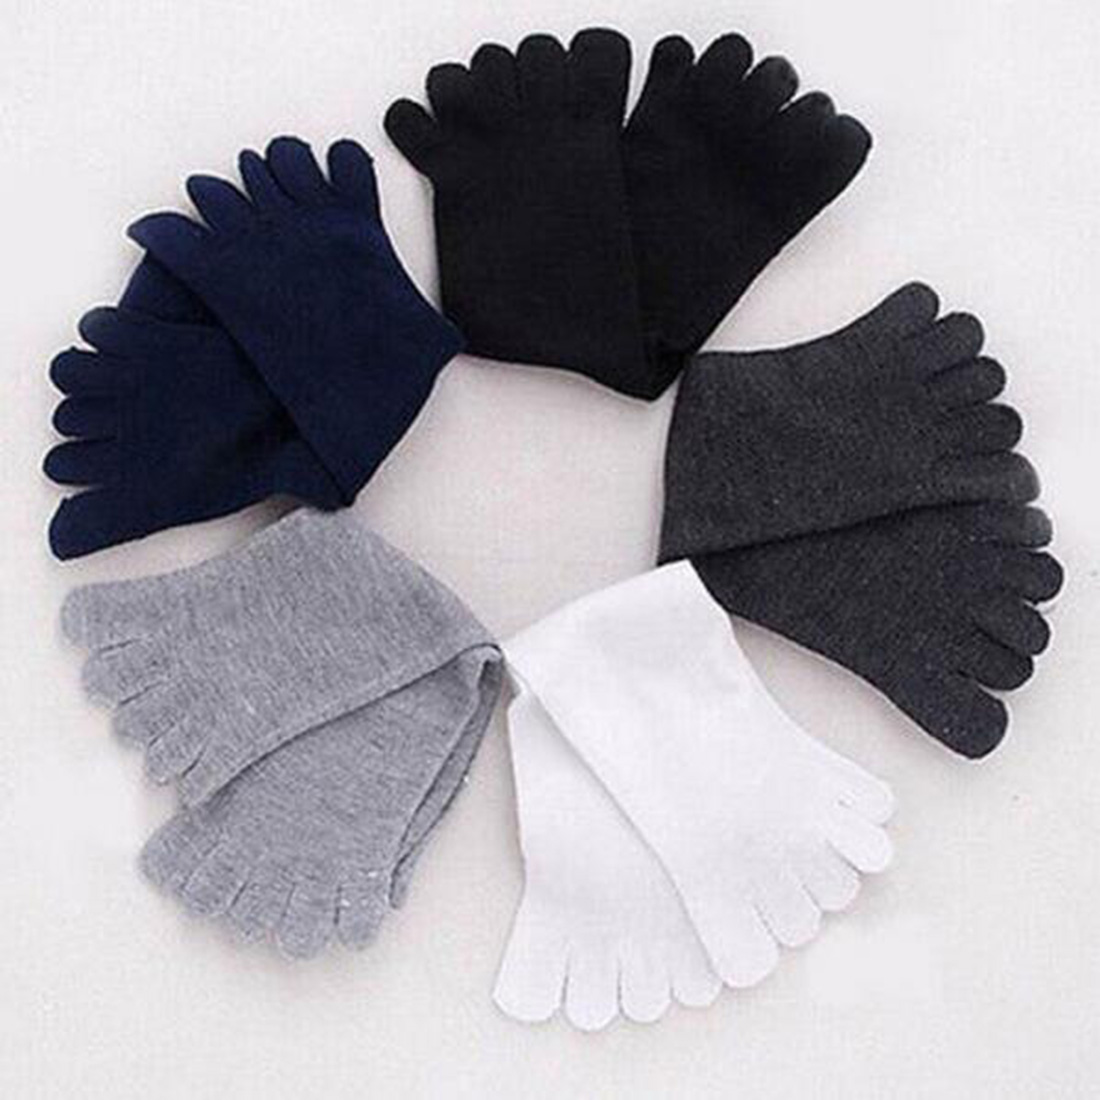 Hot Sale Soft Fashion 1 Pair Winter Autumn Warm Comfortable Men Top Quality Women's Guy Five Finger Pure Soft Cotton Toe   Socks